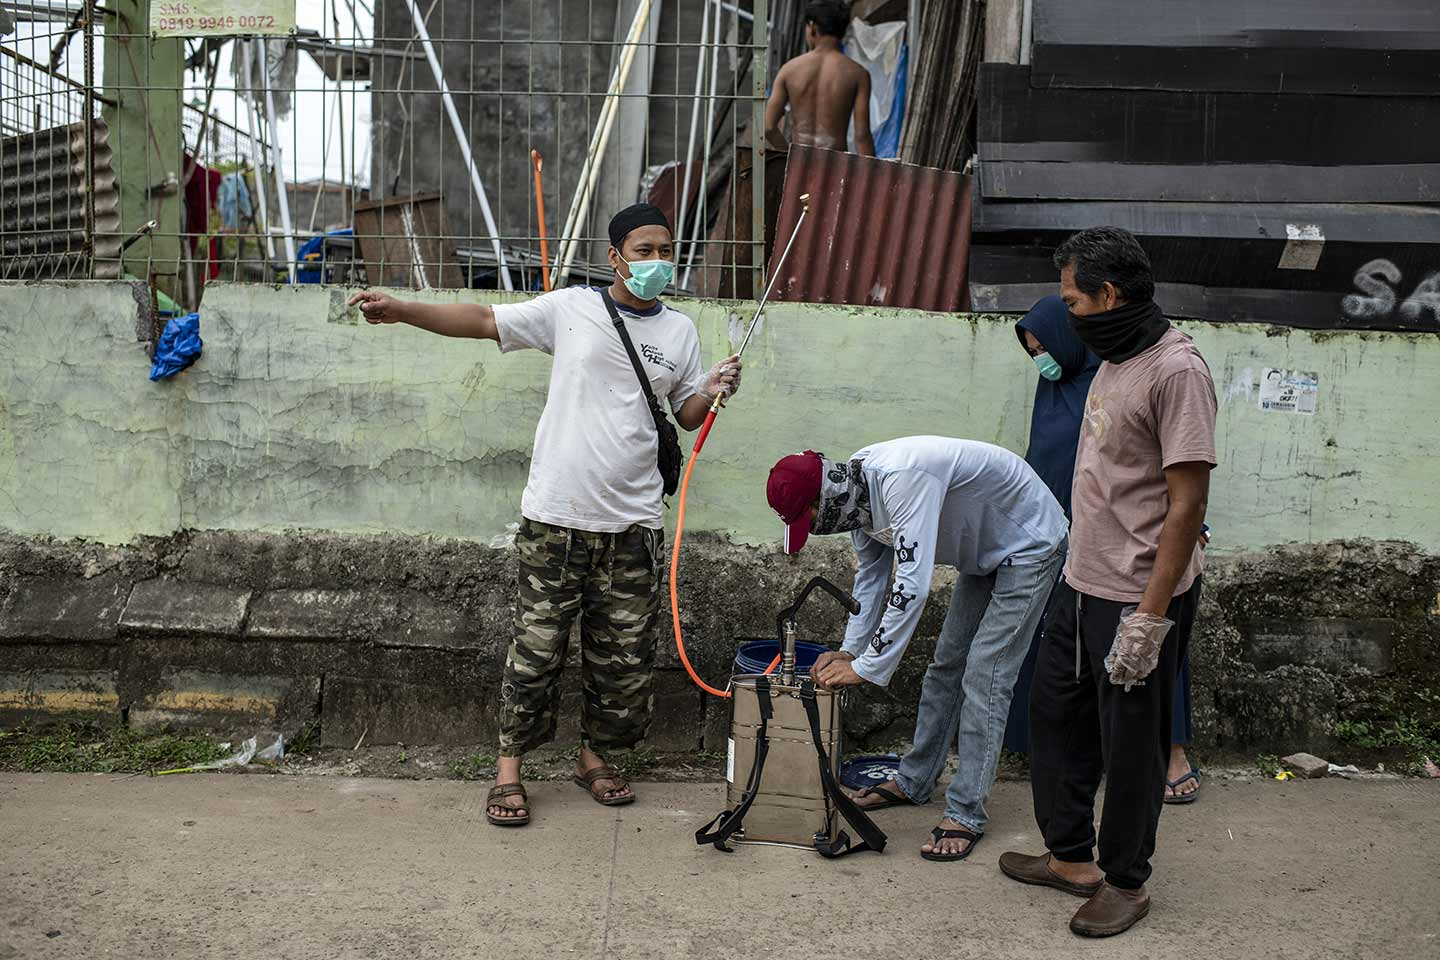 Residents spray disinfectants in their own neighborhoods to fight with Covid-19 in Jakarta, Indonesia in March, 2020. Residents take their own initiative to routinely spray disinfectants in their neighborhoods.  Credit: UNICEF/2020/Arimacs Wilander